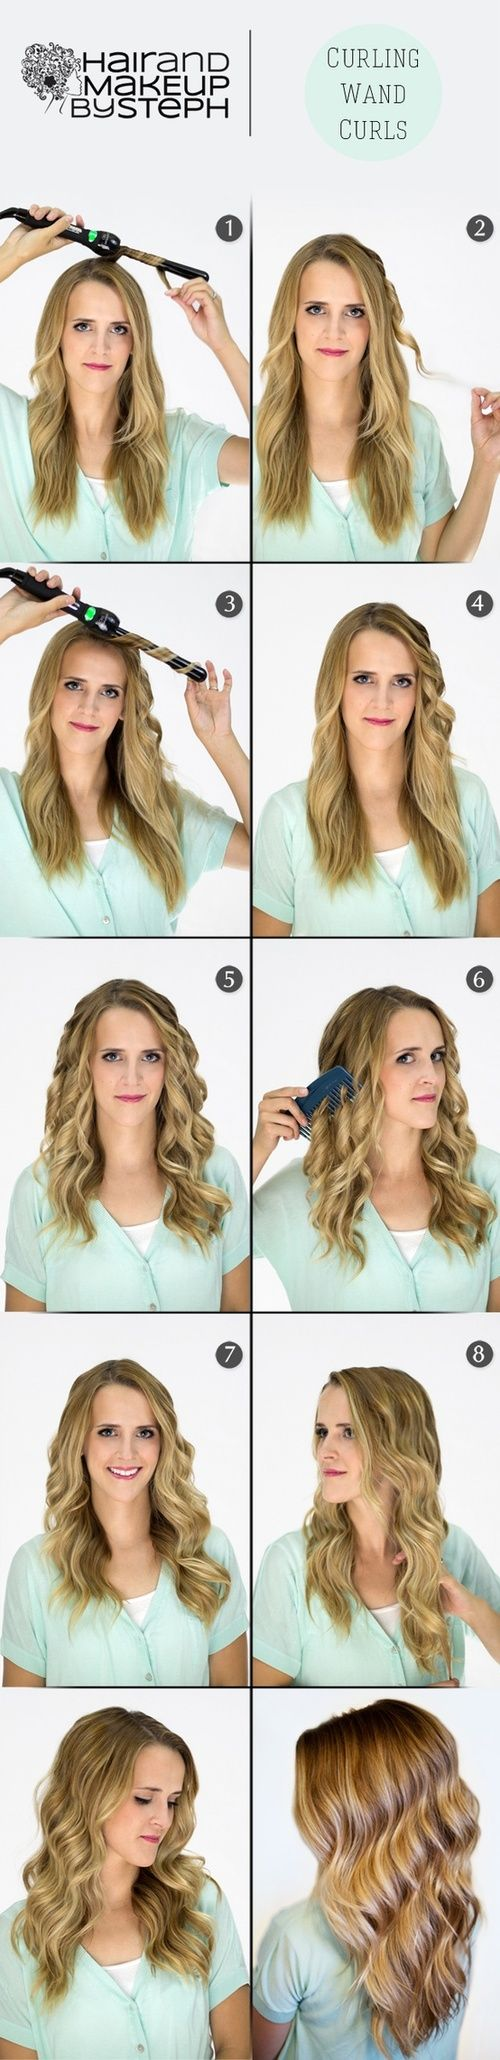 hairstyles / GIVEAWAY! Enter to WIN your own curling wand! blog.hairandmakeupbysteph.com